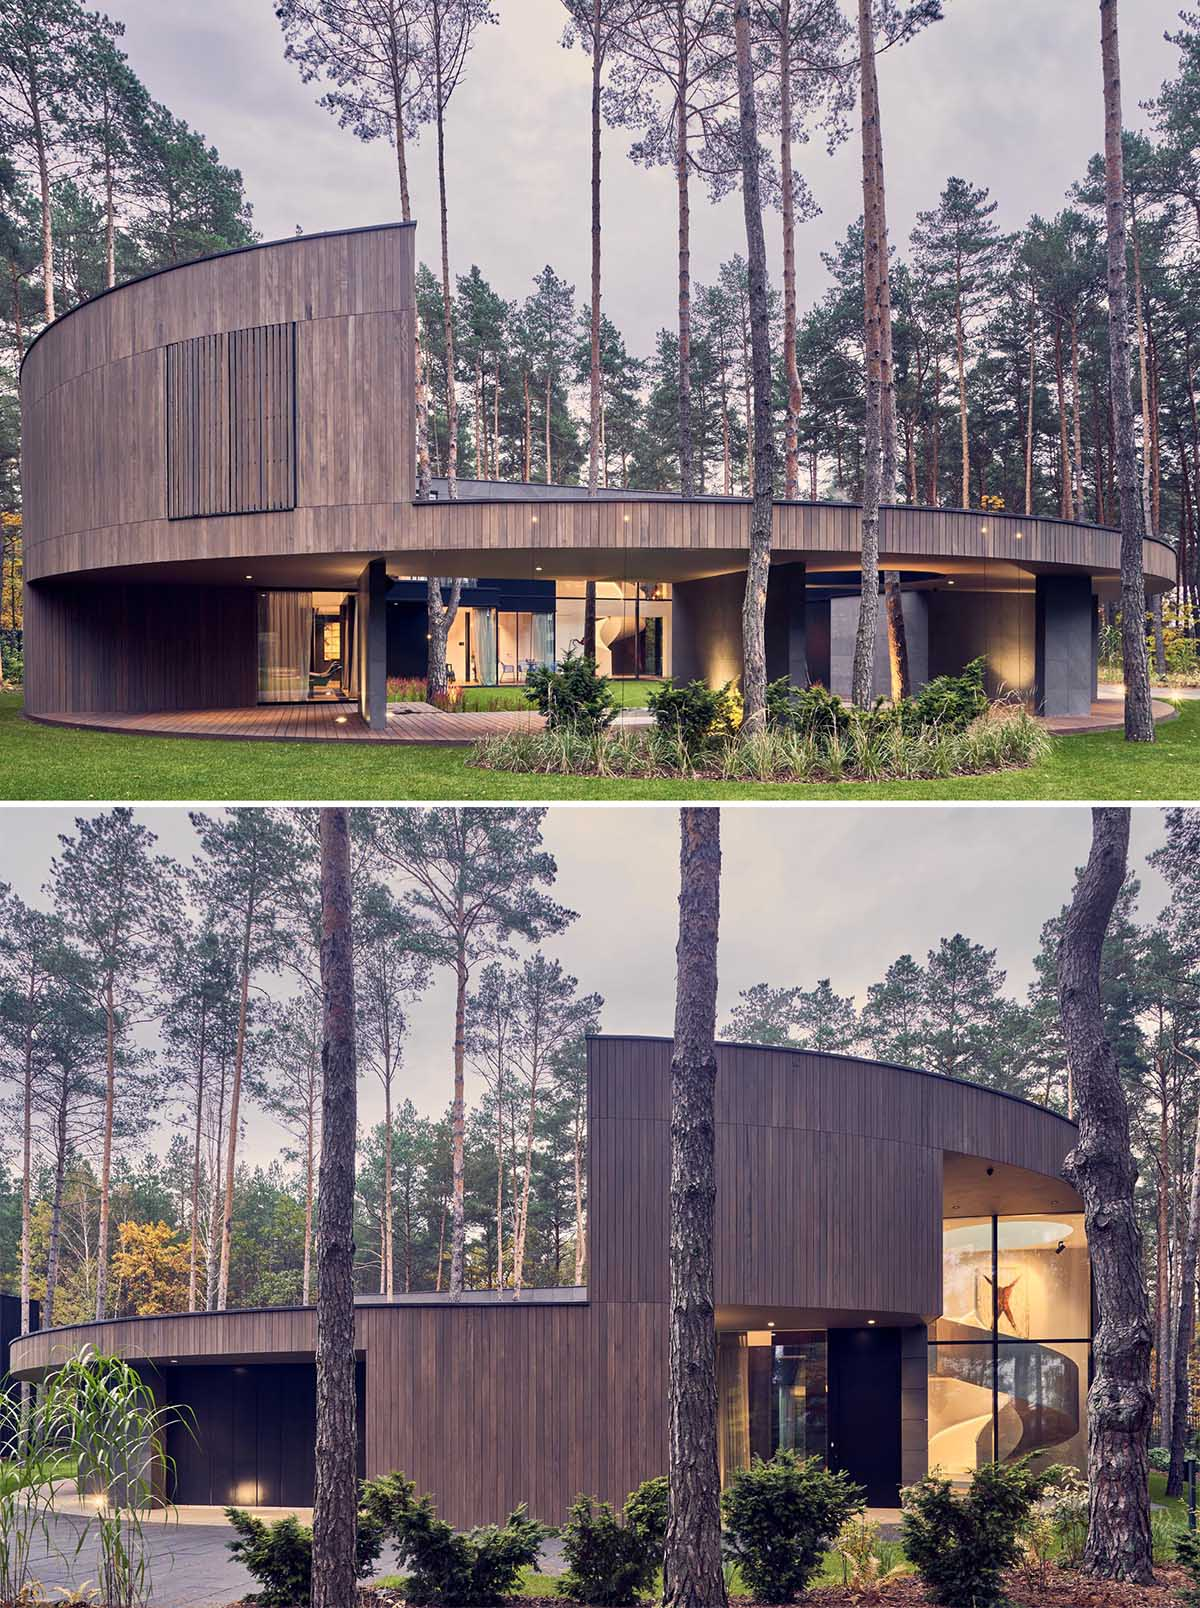 A modern round home with a wood exterior and large windows that provide a glimpse of the interior.